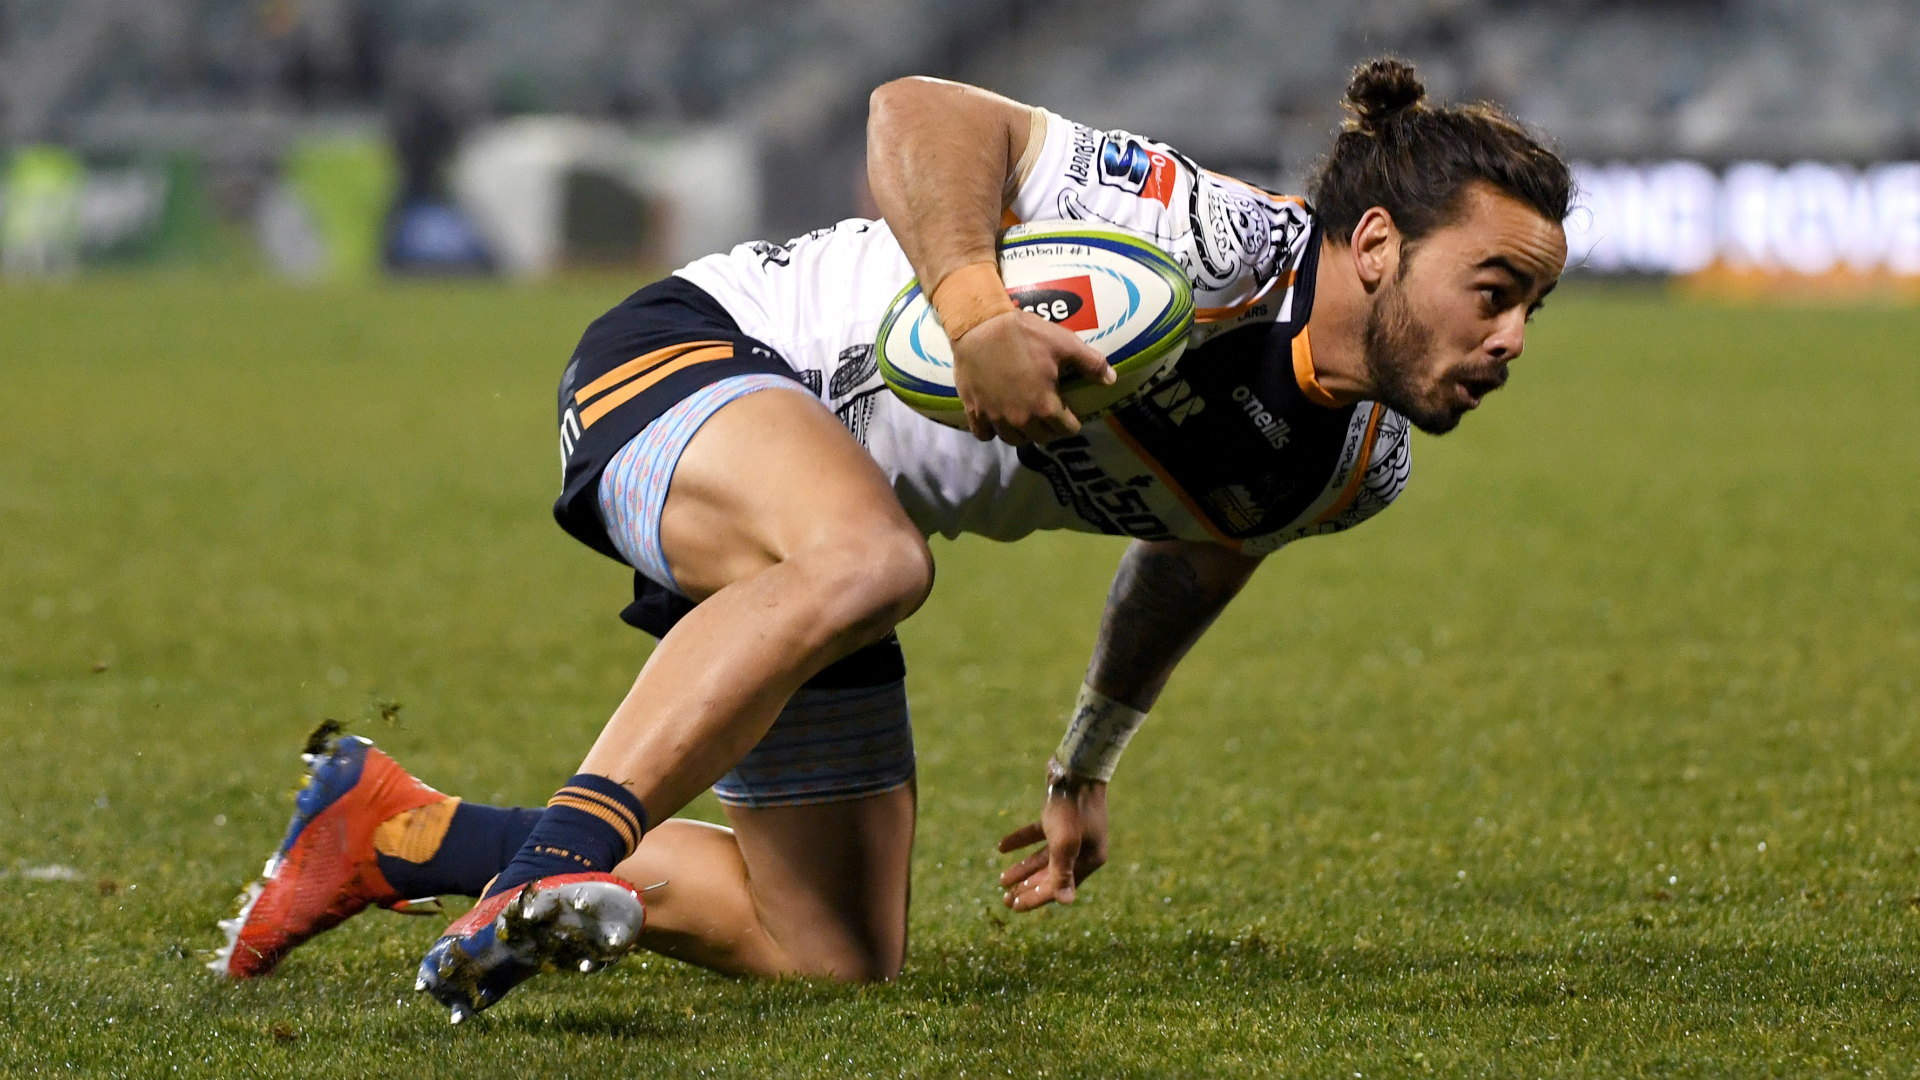 Brumbies extend streak ahead of play-offs, Hurricanes flatten poor Blues